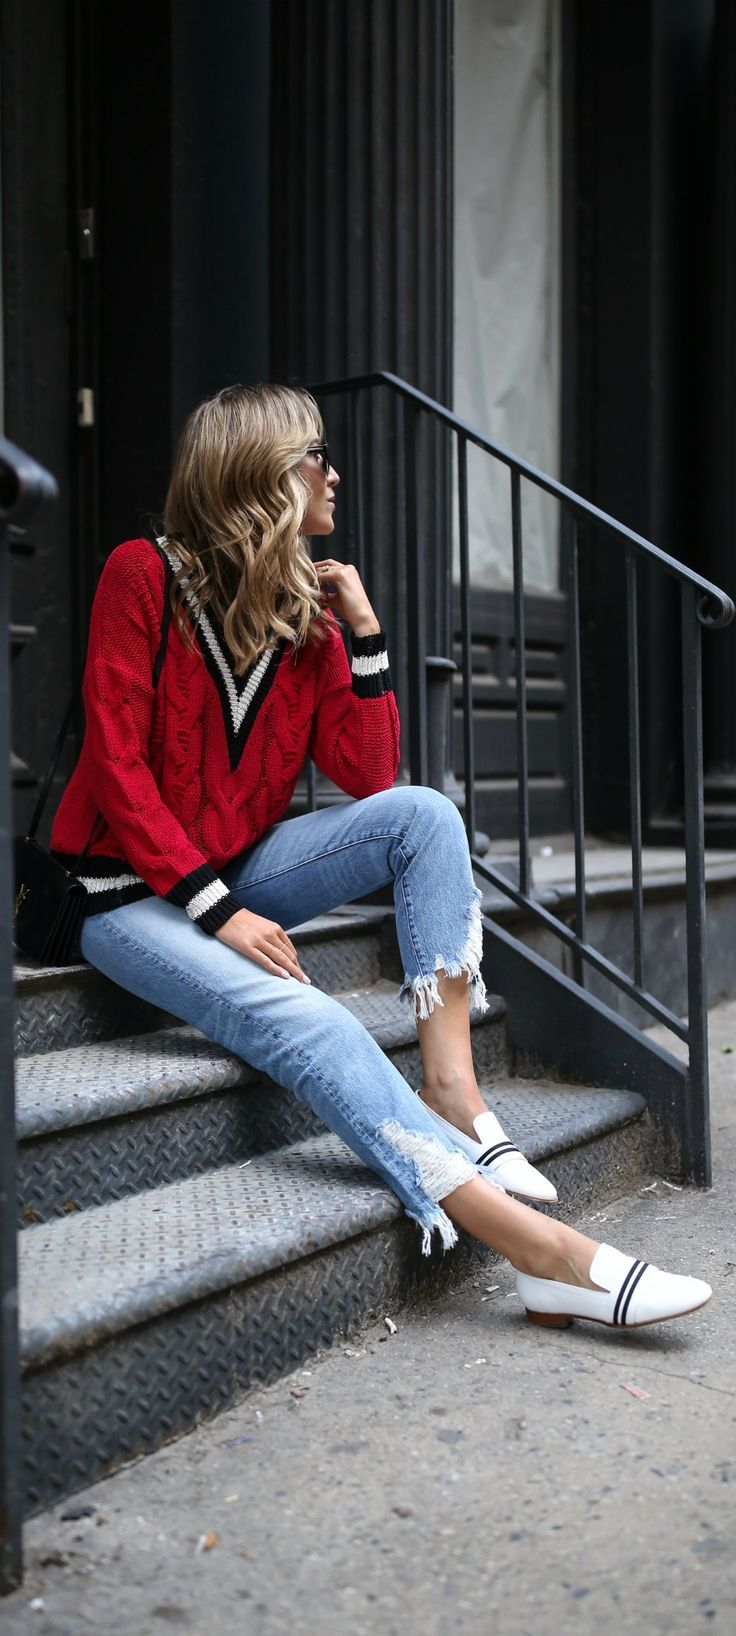 Top 10 Spring Trends to Know // How to Wear Trend #6: Athletic-Inspired Varsity Vibes // click the image for all the details! // red v-neck cableknit sweater with black and white striped detailing, ripped frayed hem high waisted boyfriend jeans, white loafers with black and white strip ribbon detail, ysl bag // 3x1 denim, rag and bone style